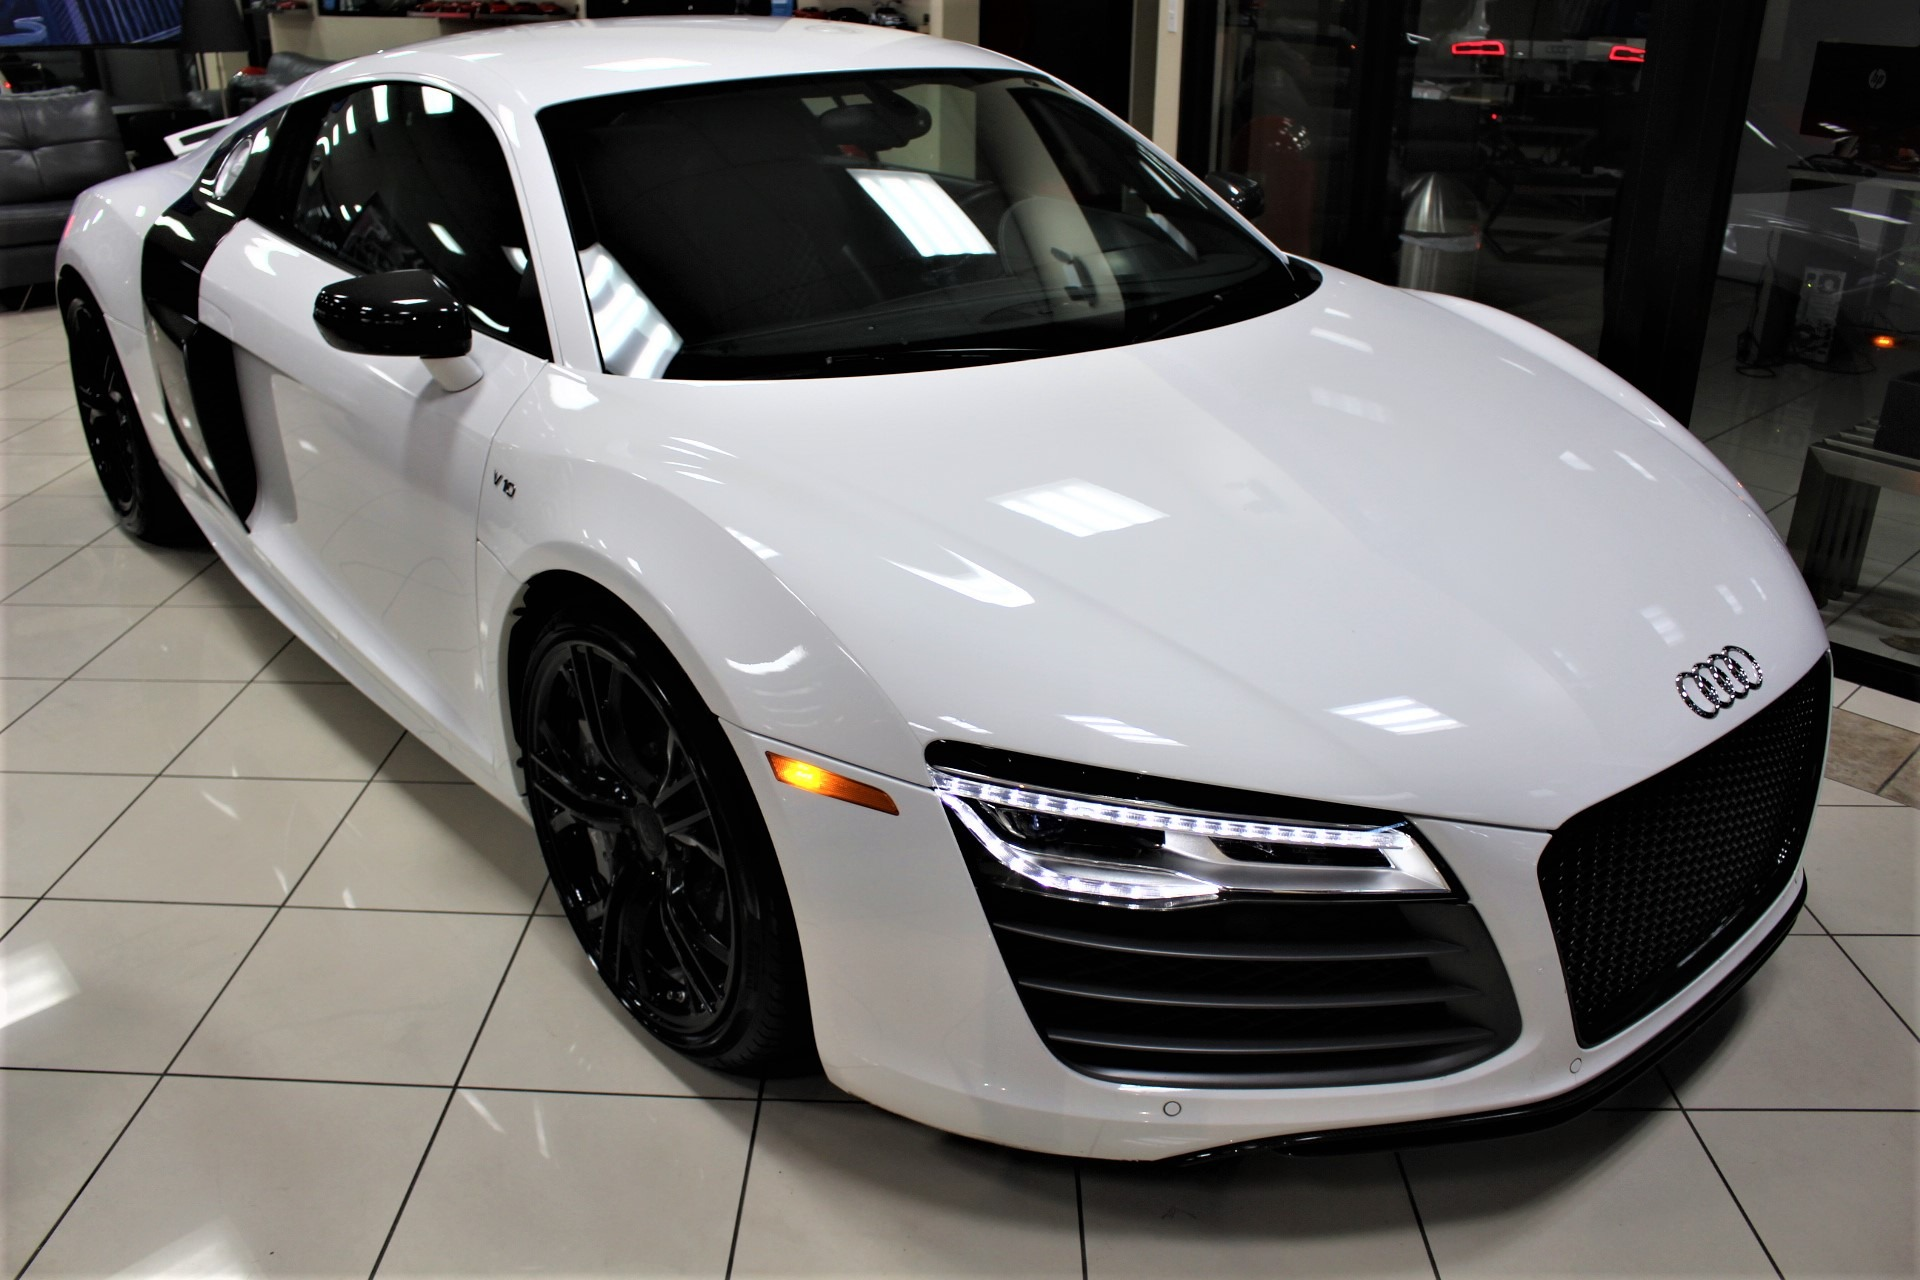 Used 2014 Audi R8 Plus 5.2 quattro for sale Sold at The Gables Sports Cars in Miami FL 33146 1